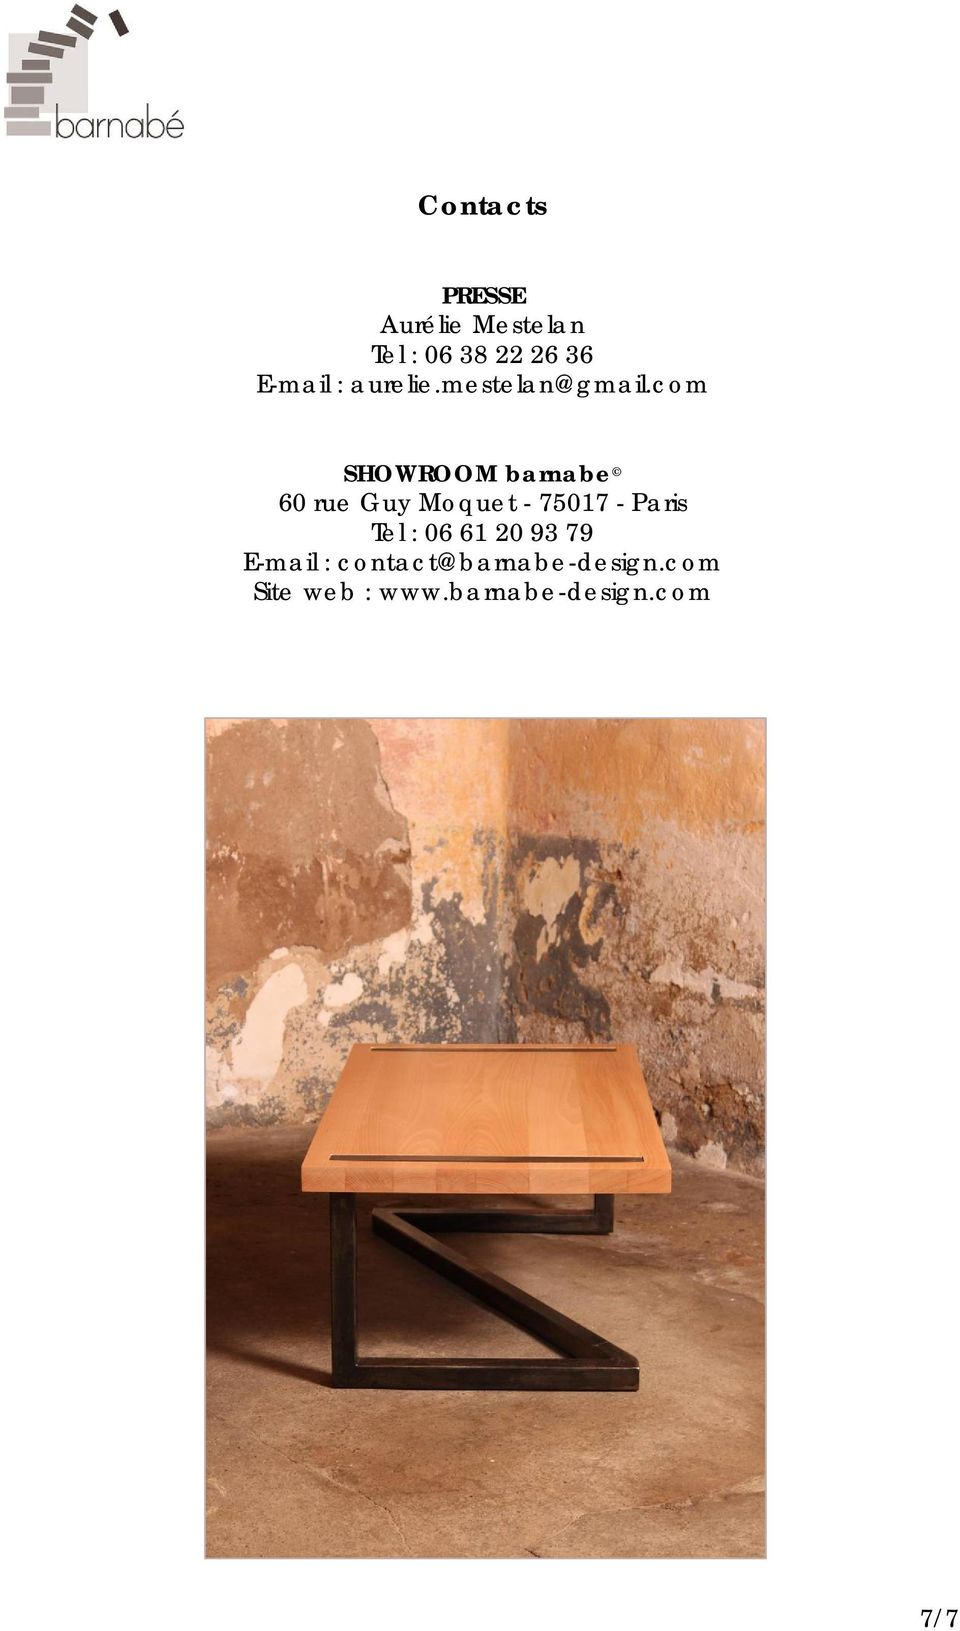 com SHOWROOM barnabe 60 rue Guy Moquet - 75017 - Paris Tel